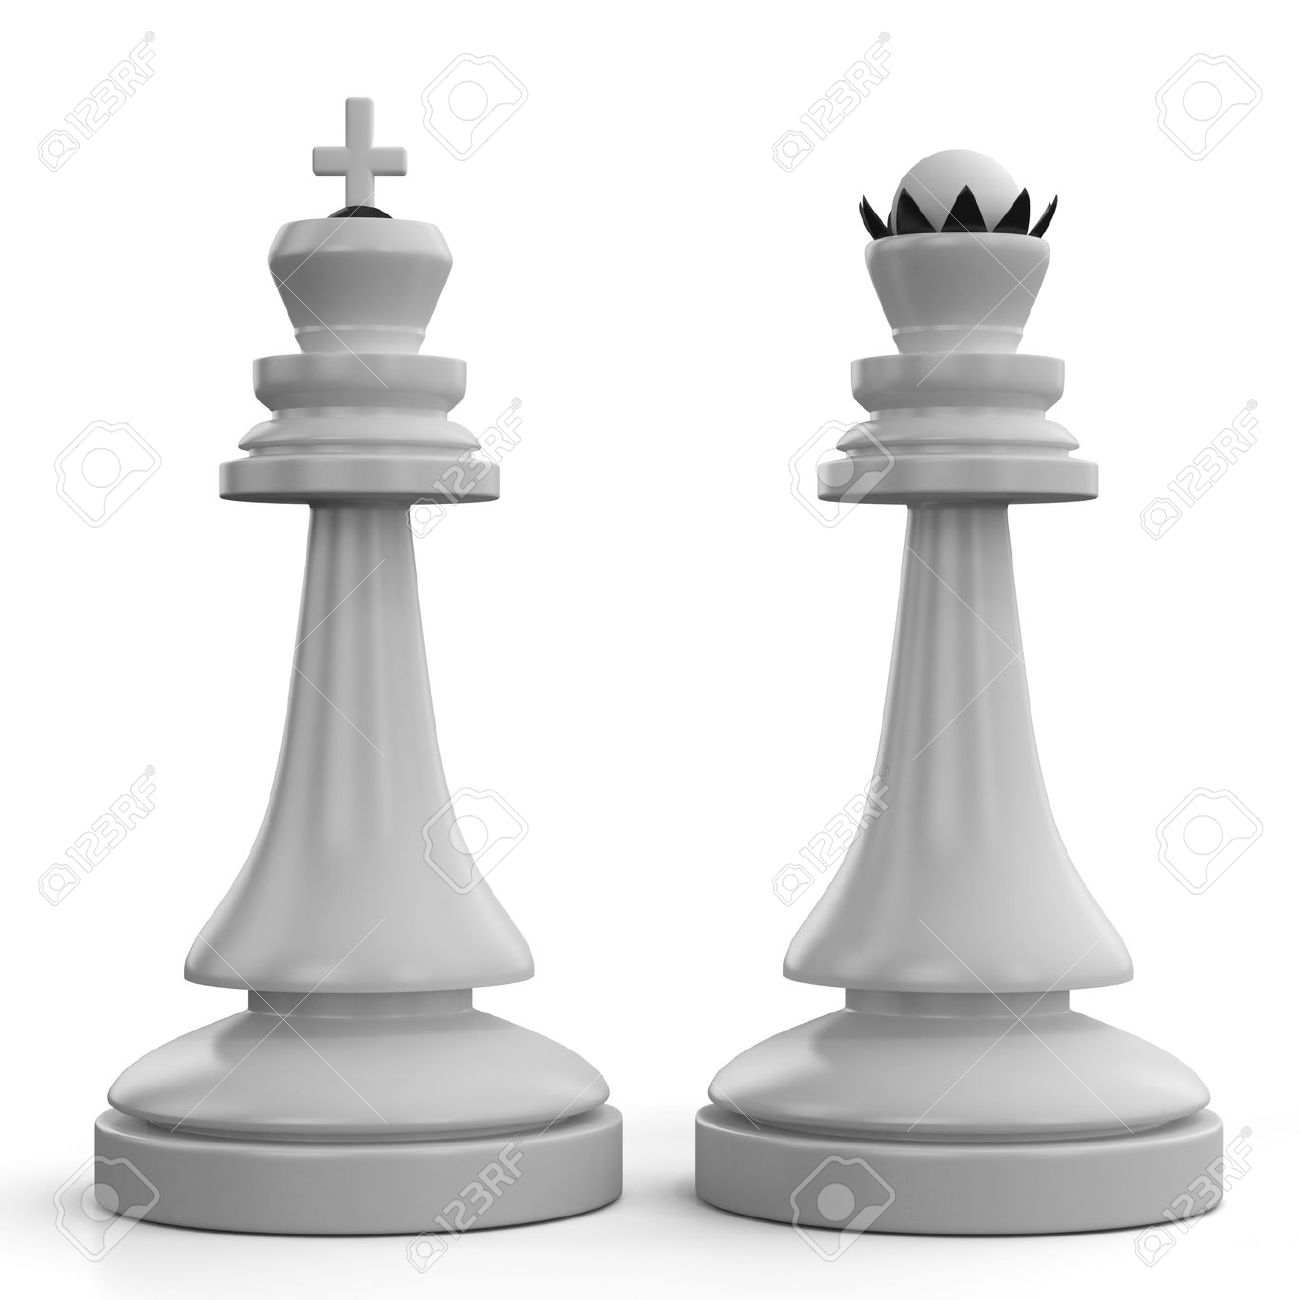 Chess King And Queen Stock Photo Picture And Royalty Free Image